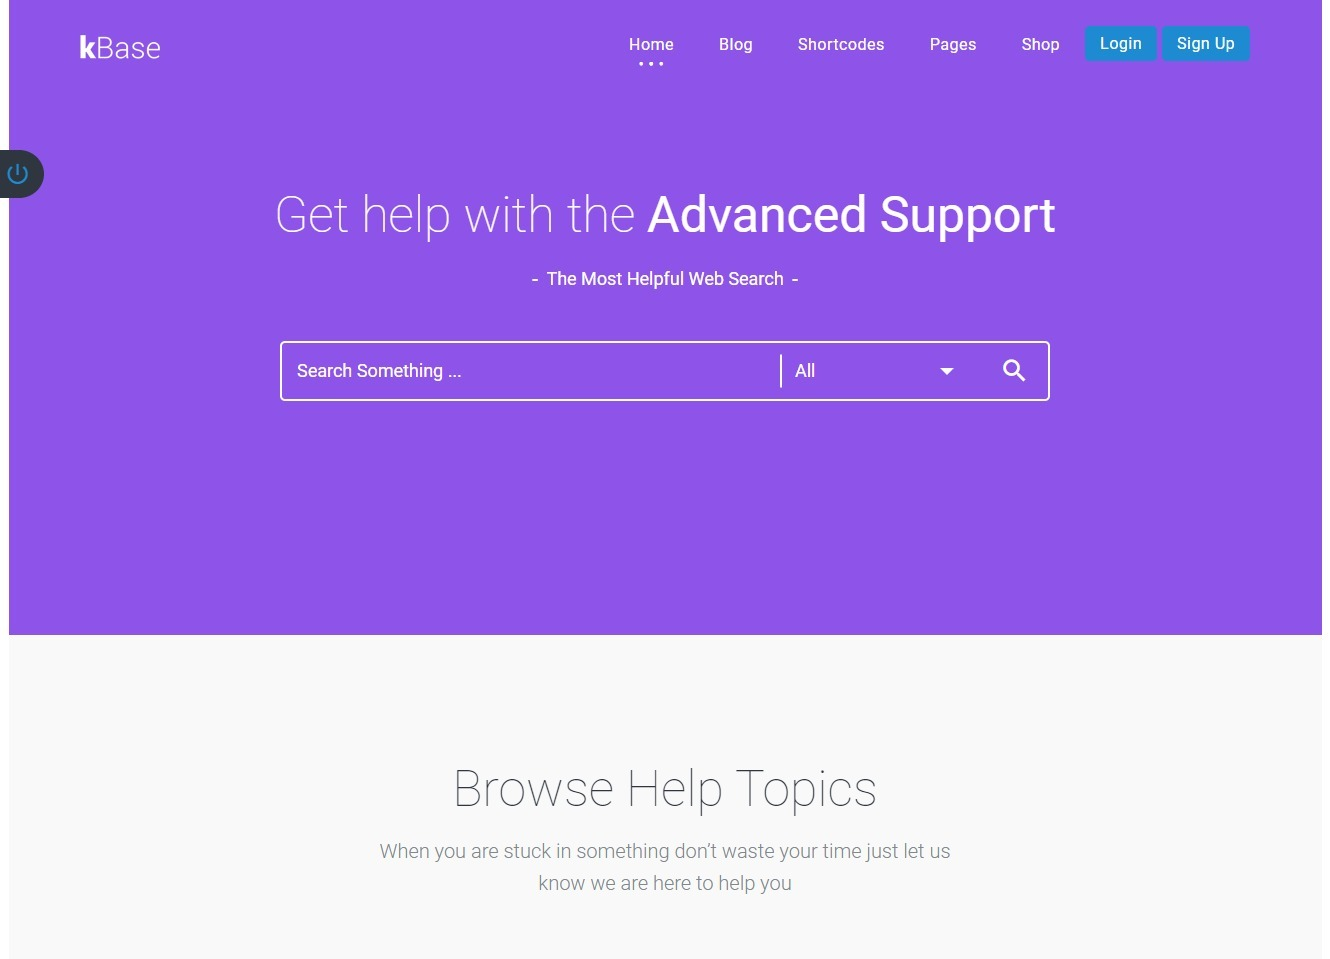 KBase WordPress Theme For Providing Fast Friendly Online Support